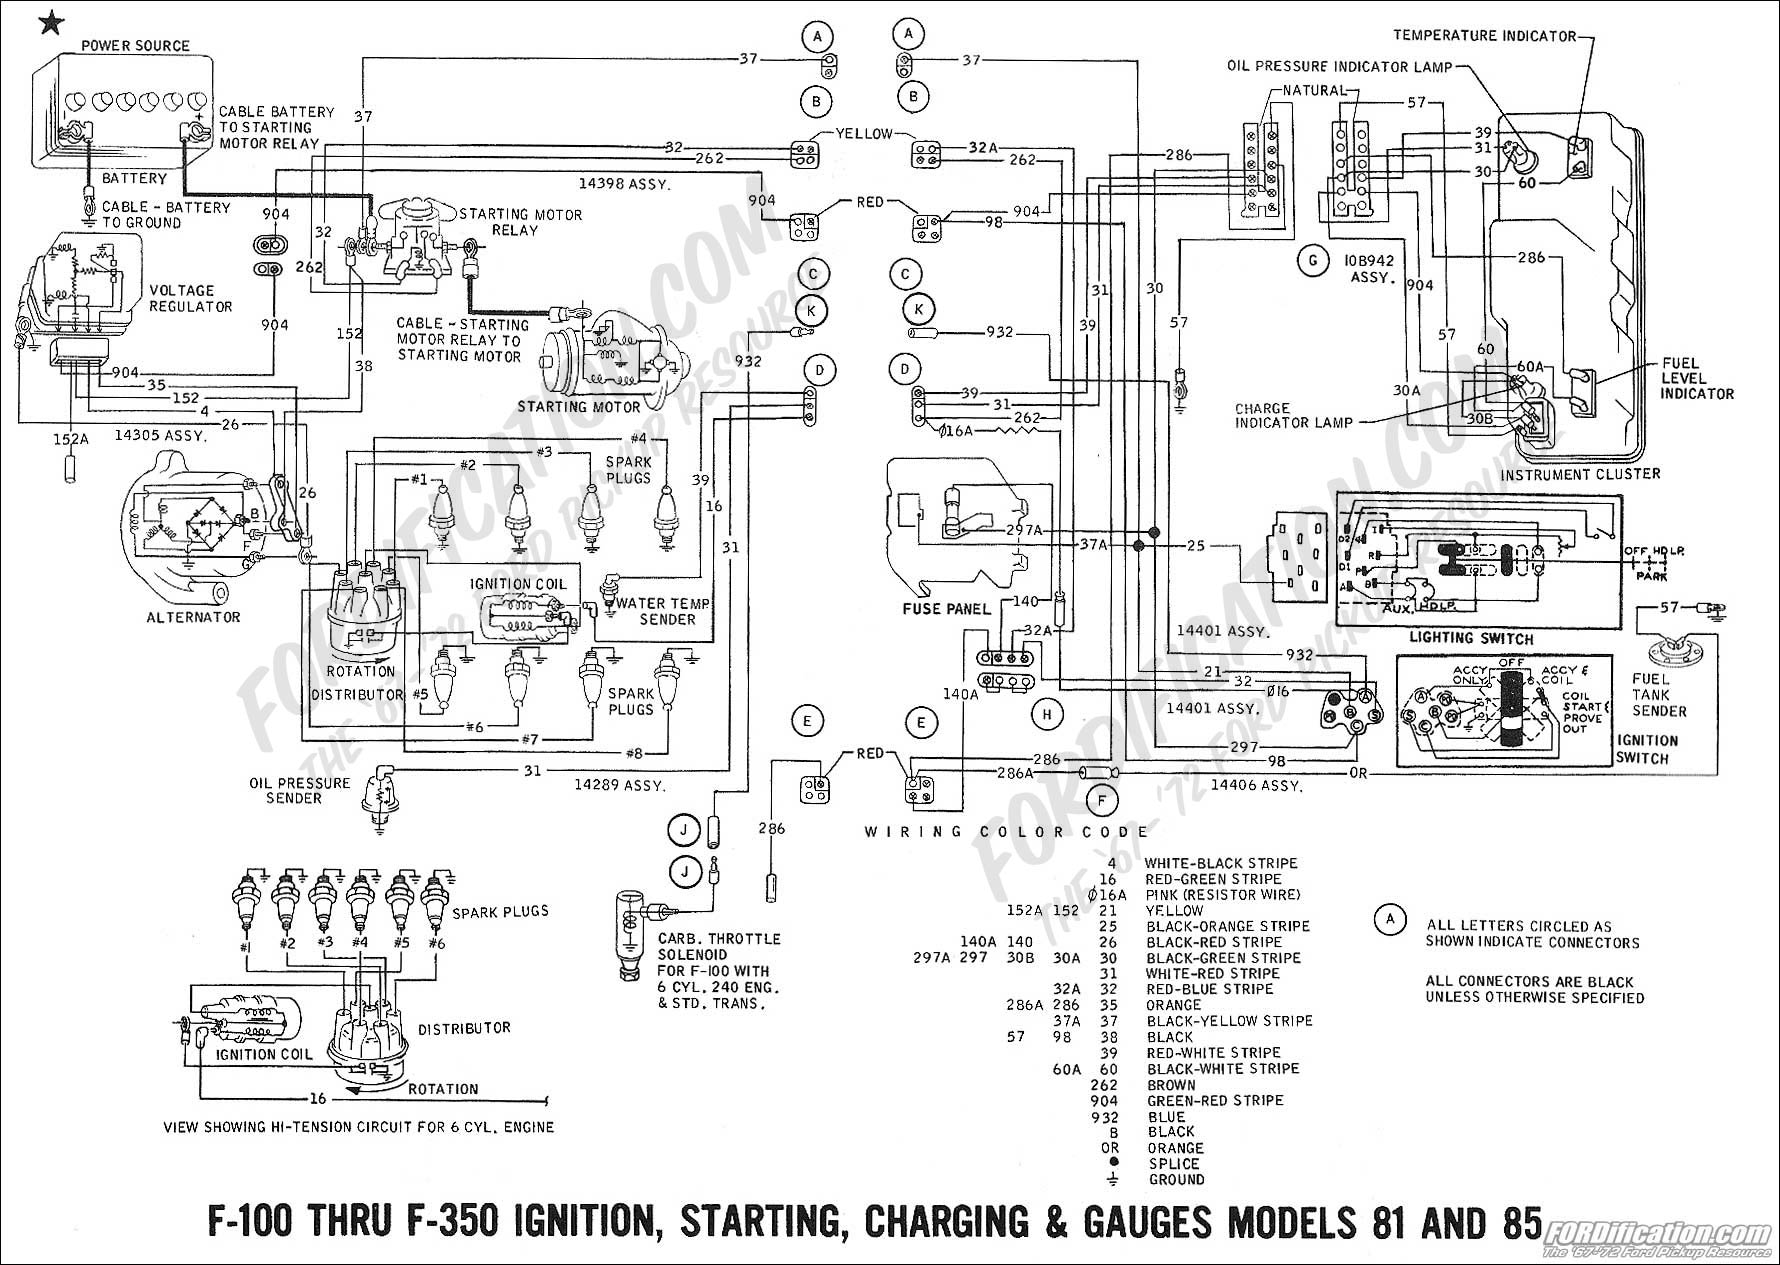 [WRG-7488] 1970 Ford F 350 Voltage Regulator Wiring Diagram